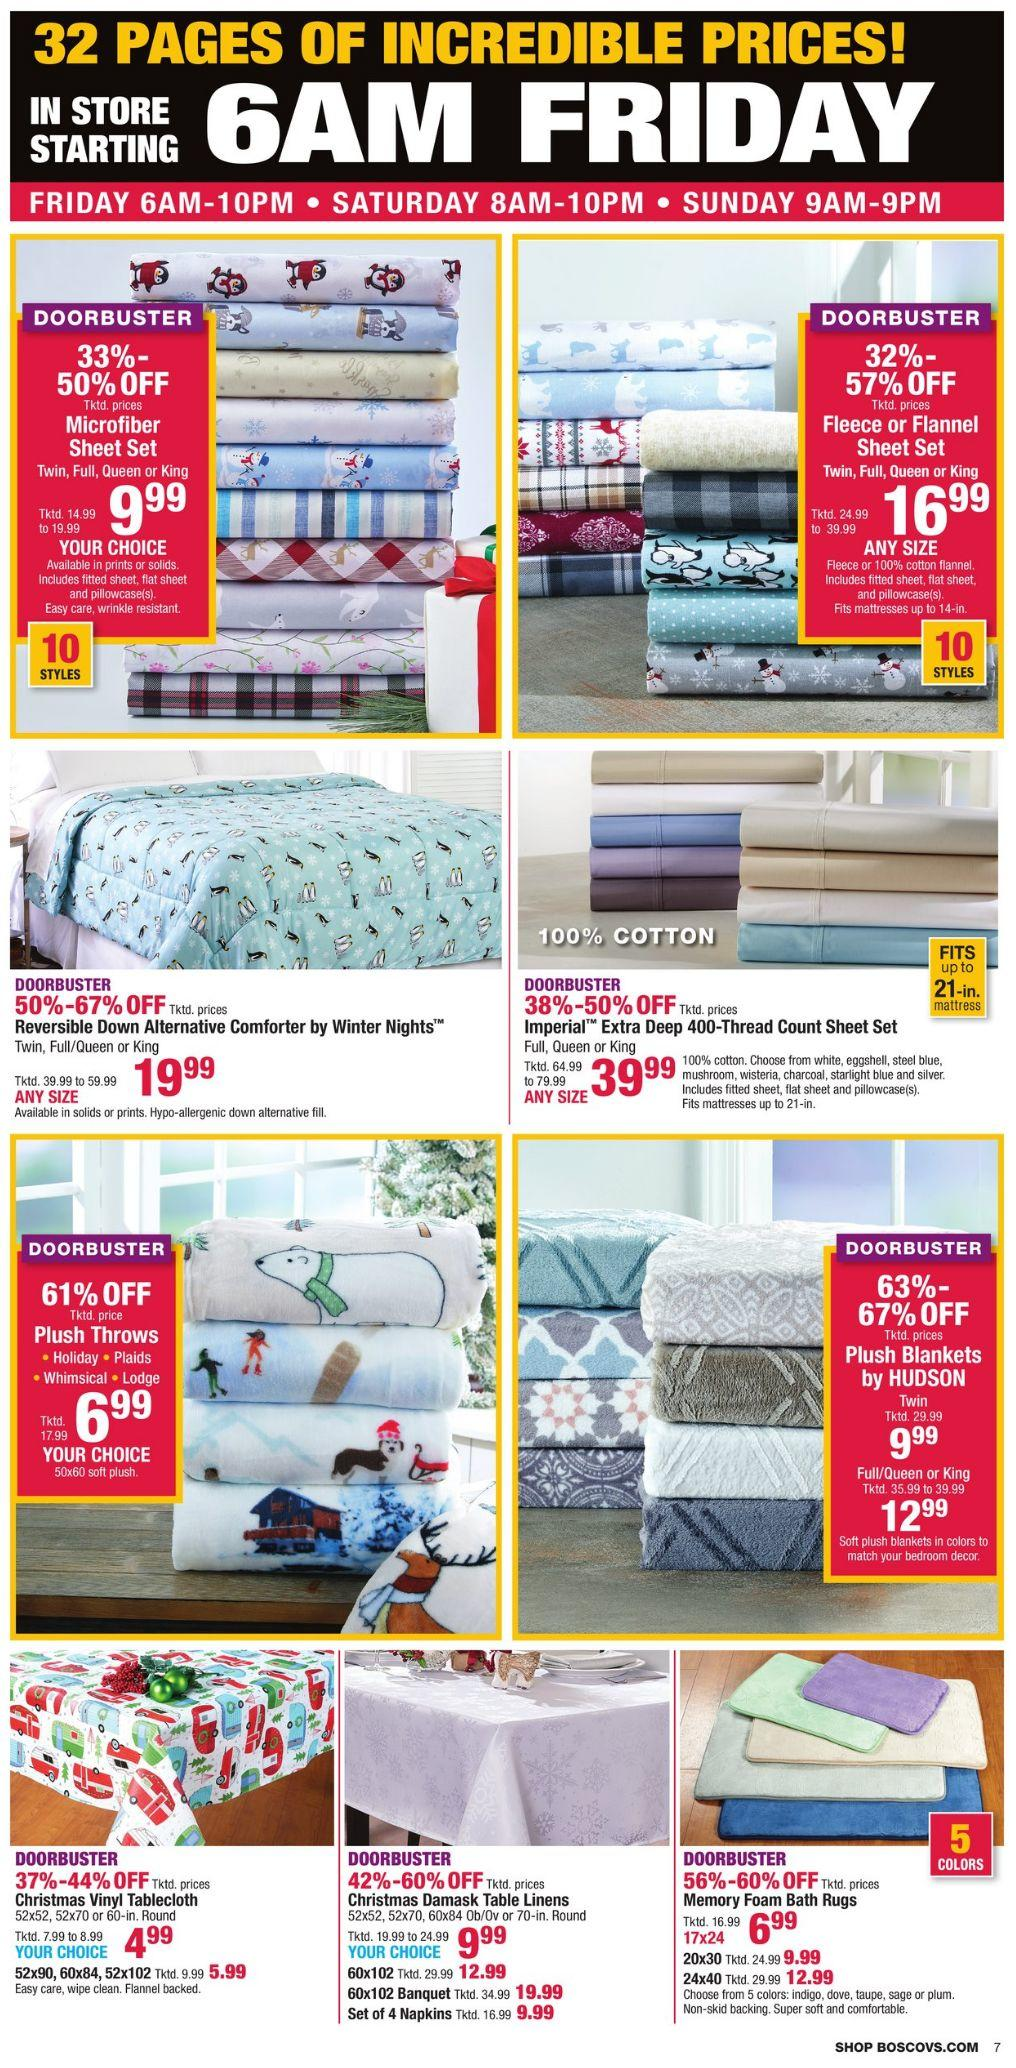 Boscov's Black Friday 2020 Page 7